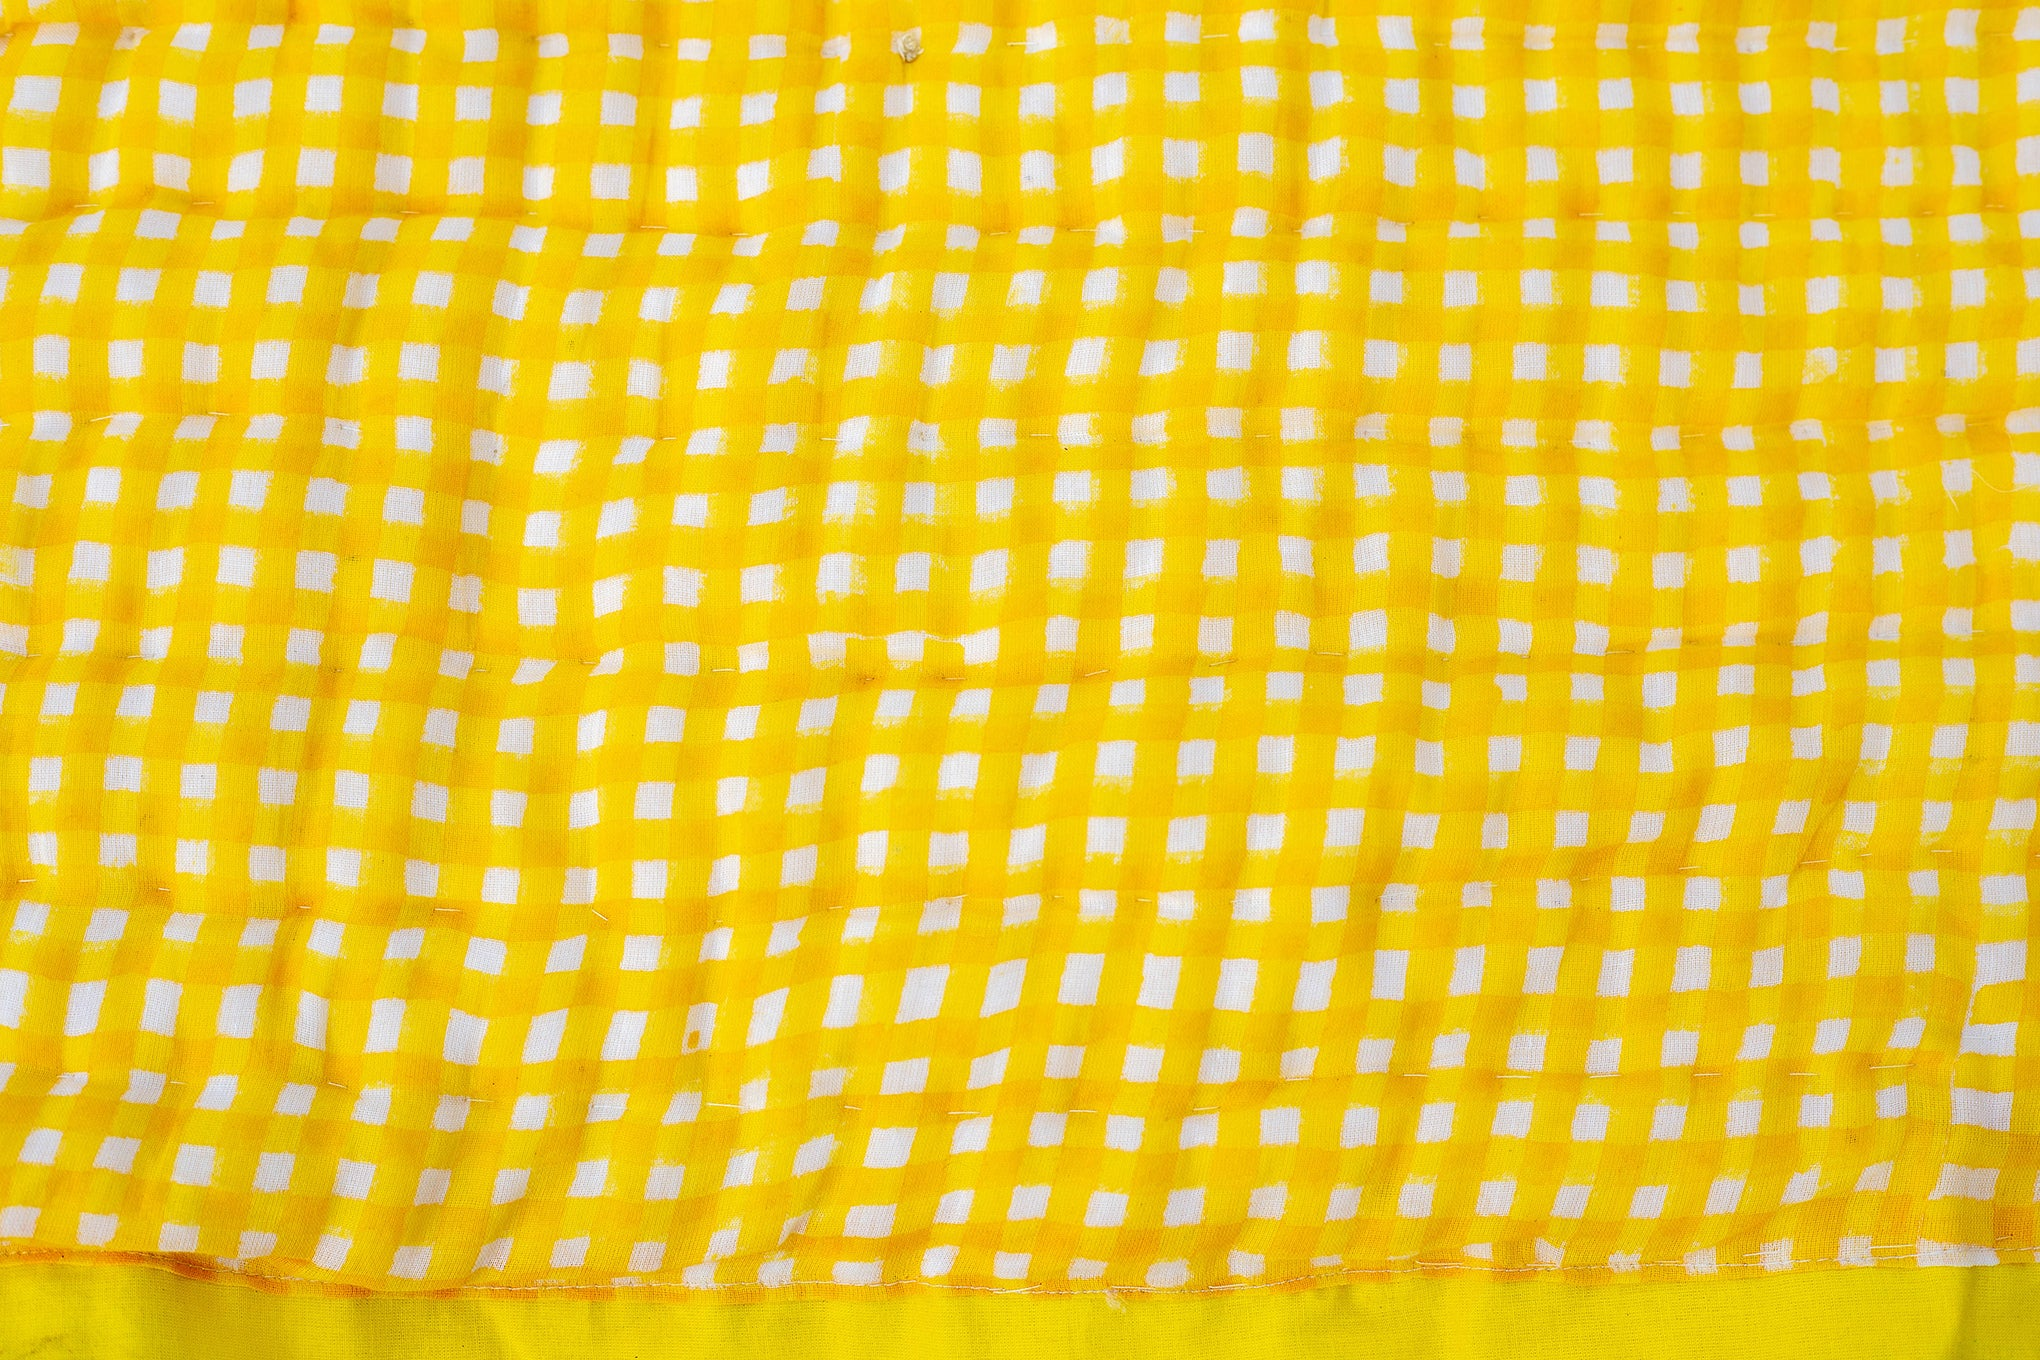 All New Roysha 2021 Queen Quilt Collection,100 Percent Handmade, Hand Block printed Quilt, Jaipuri Quilt, Hand Quilted, Yellow Checks